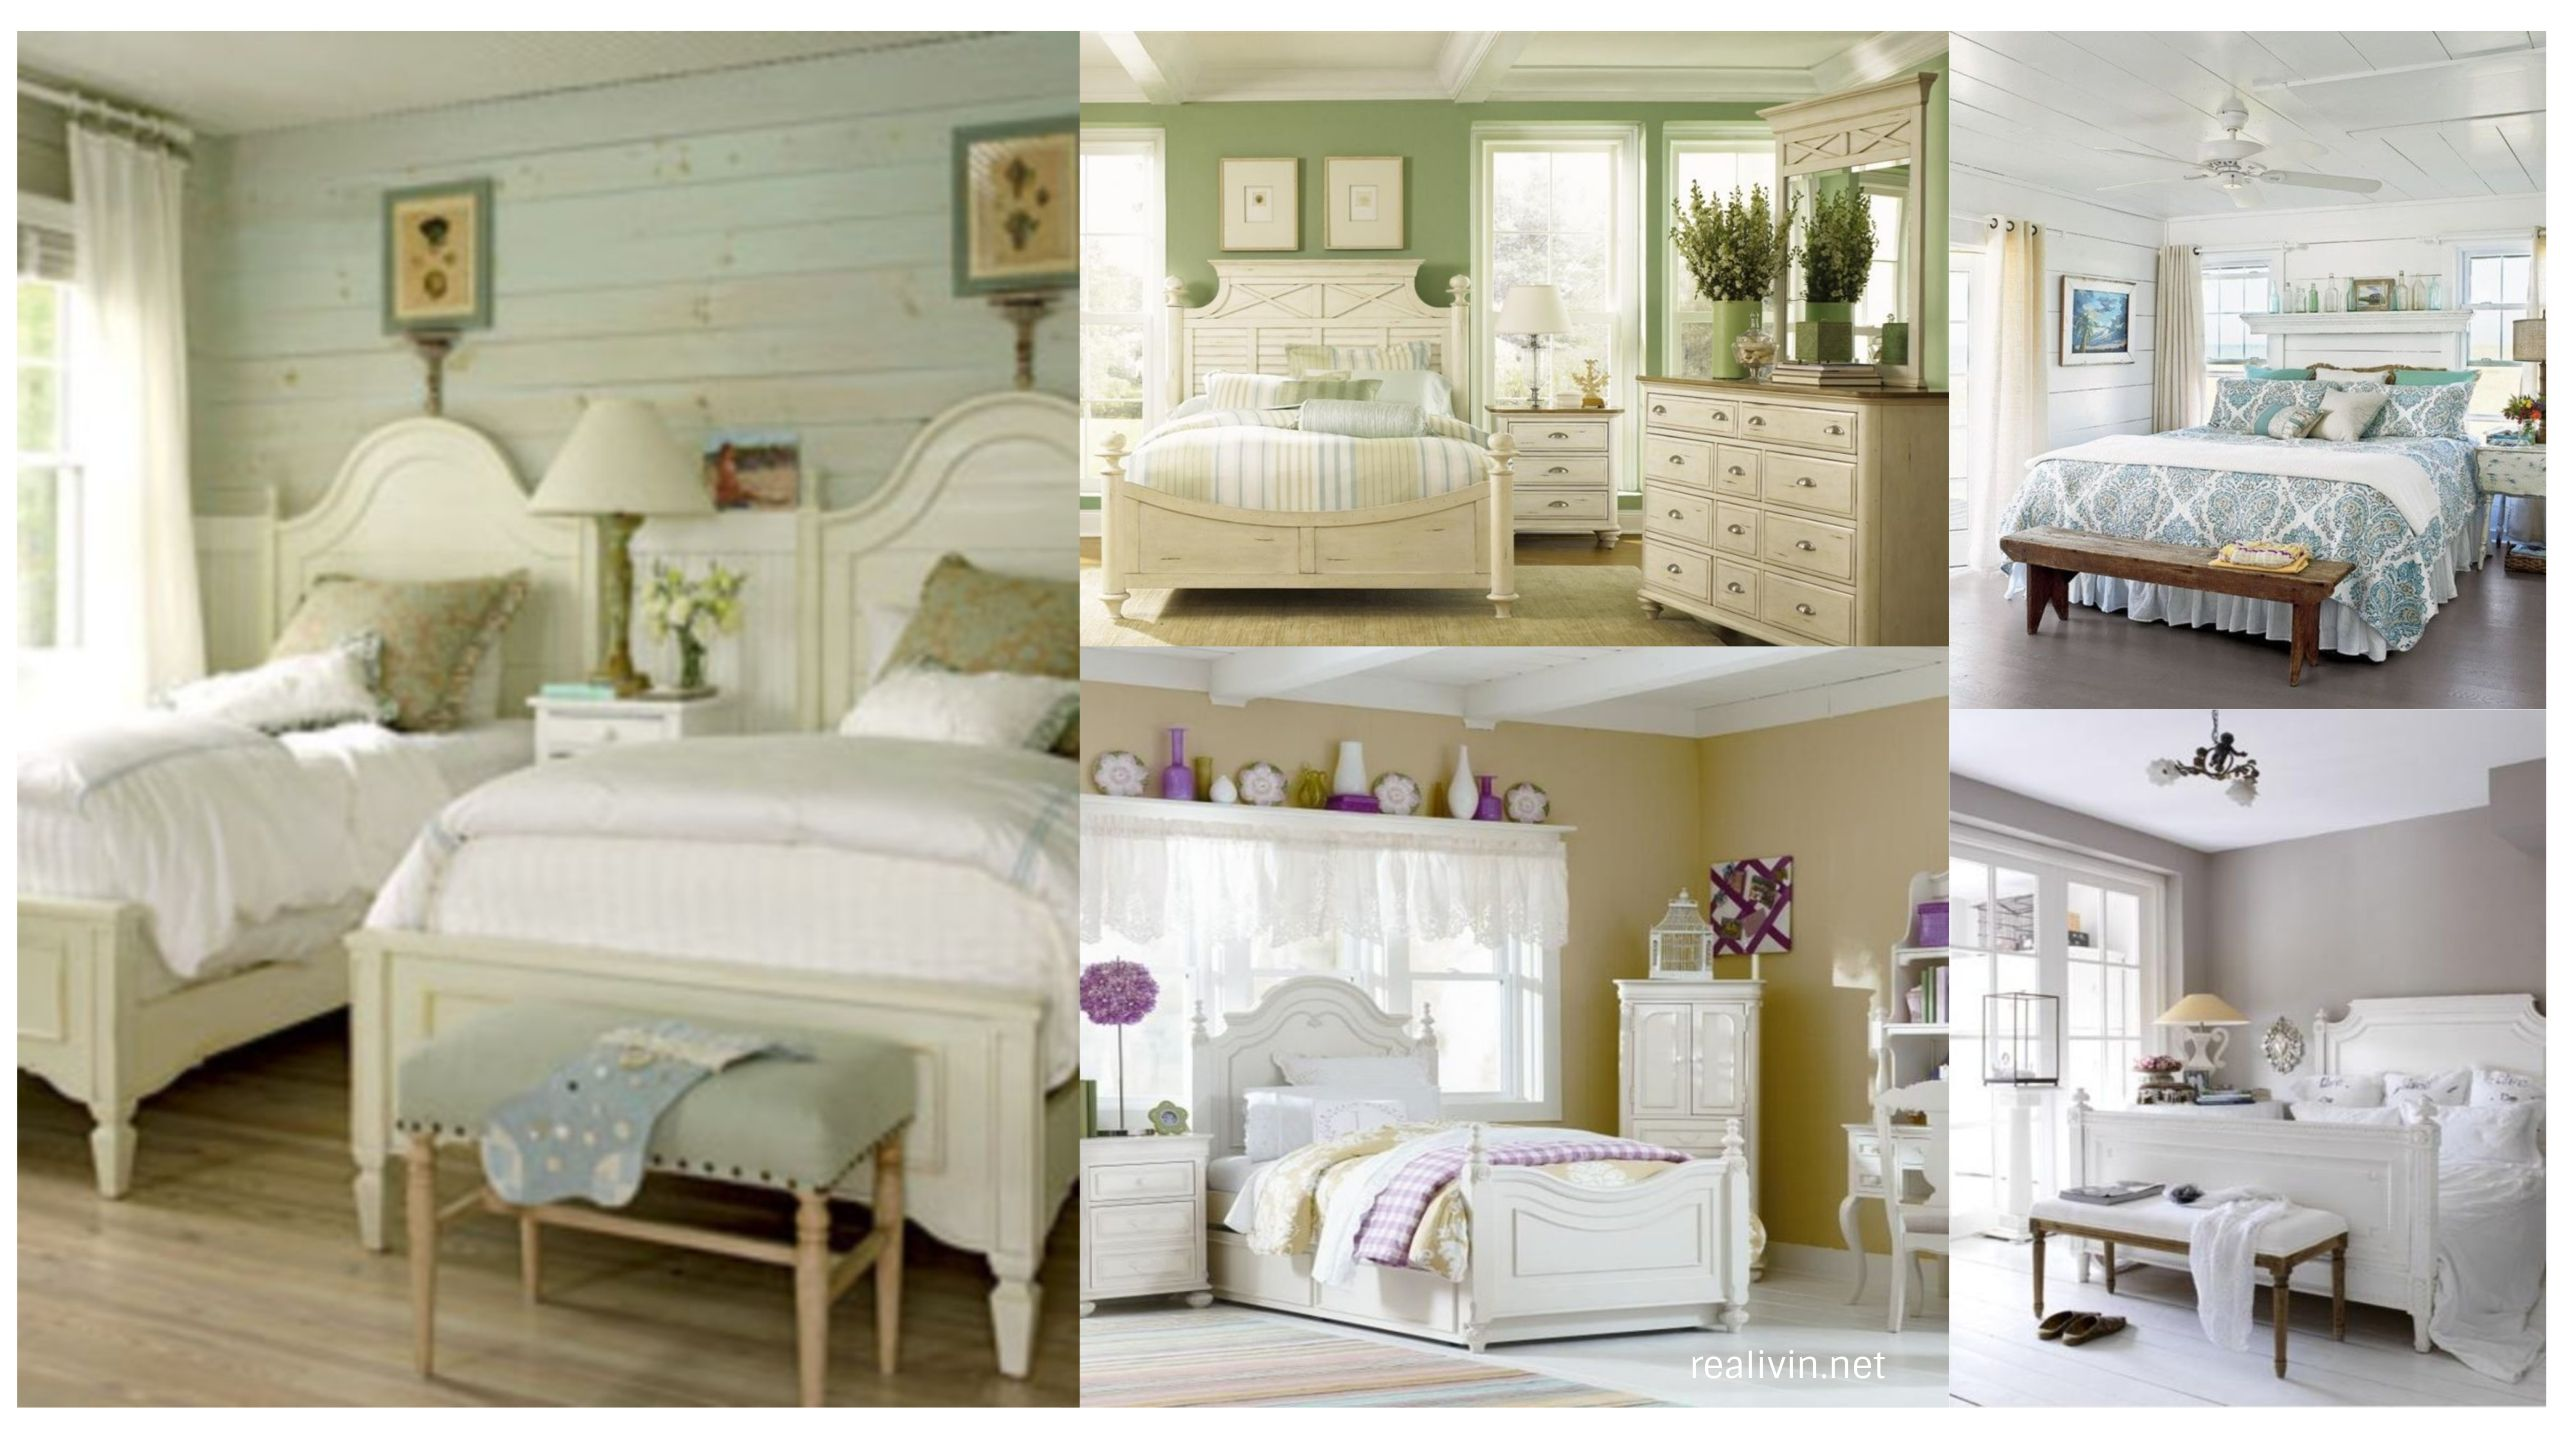 lovely distressed white bedroom furniture - realivin